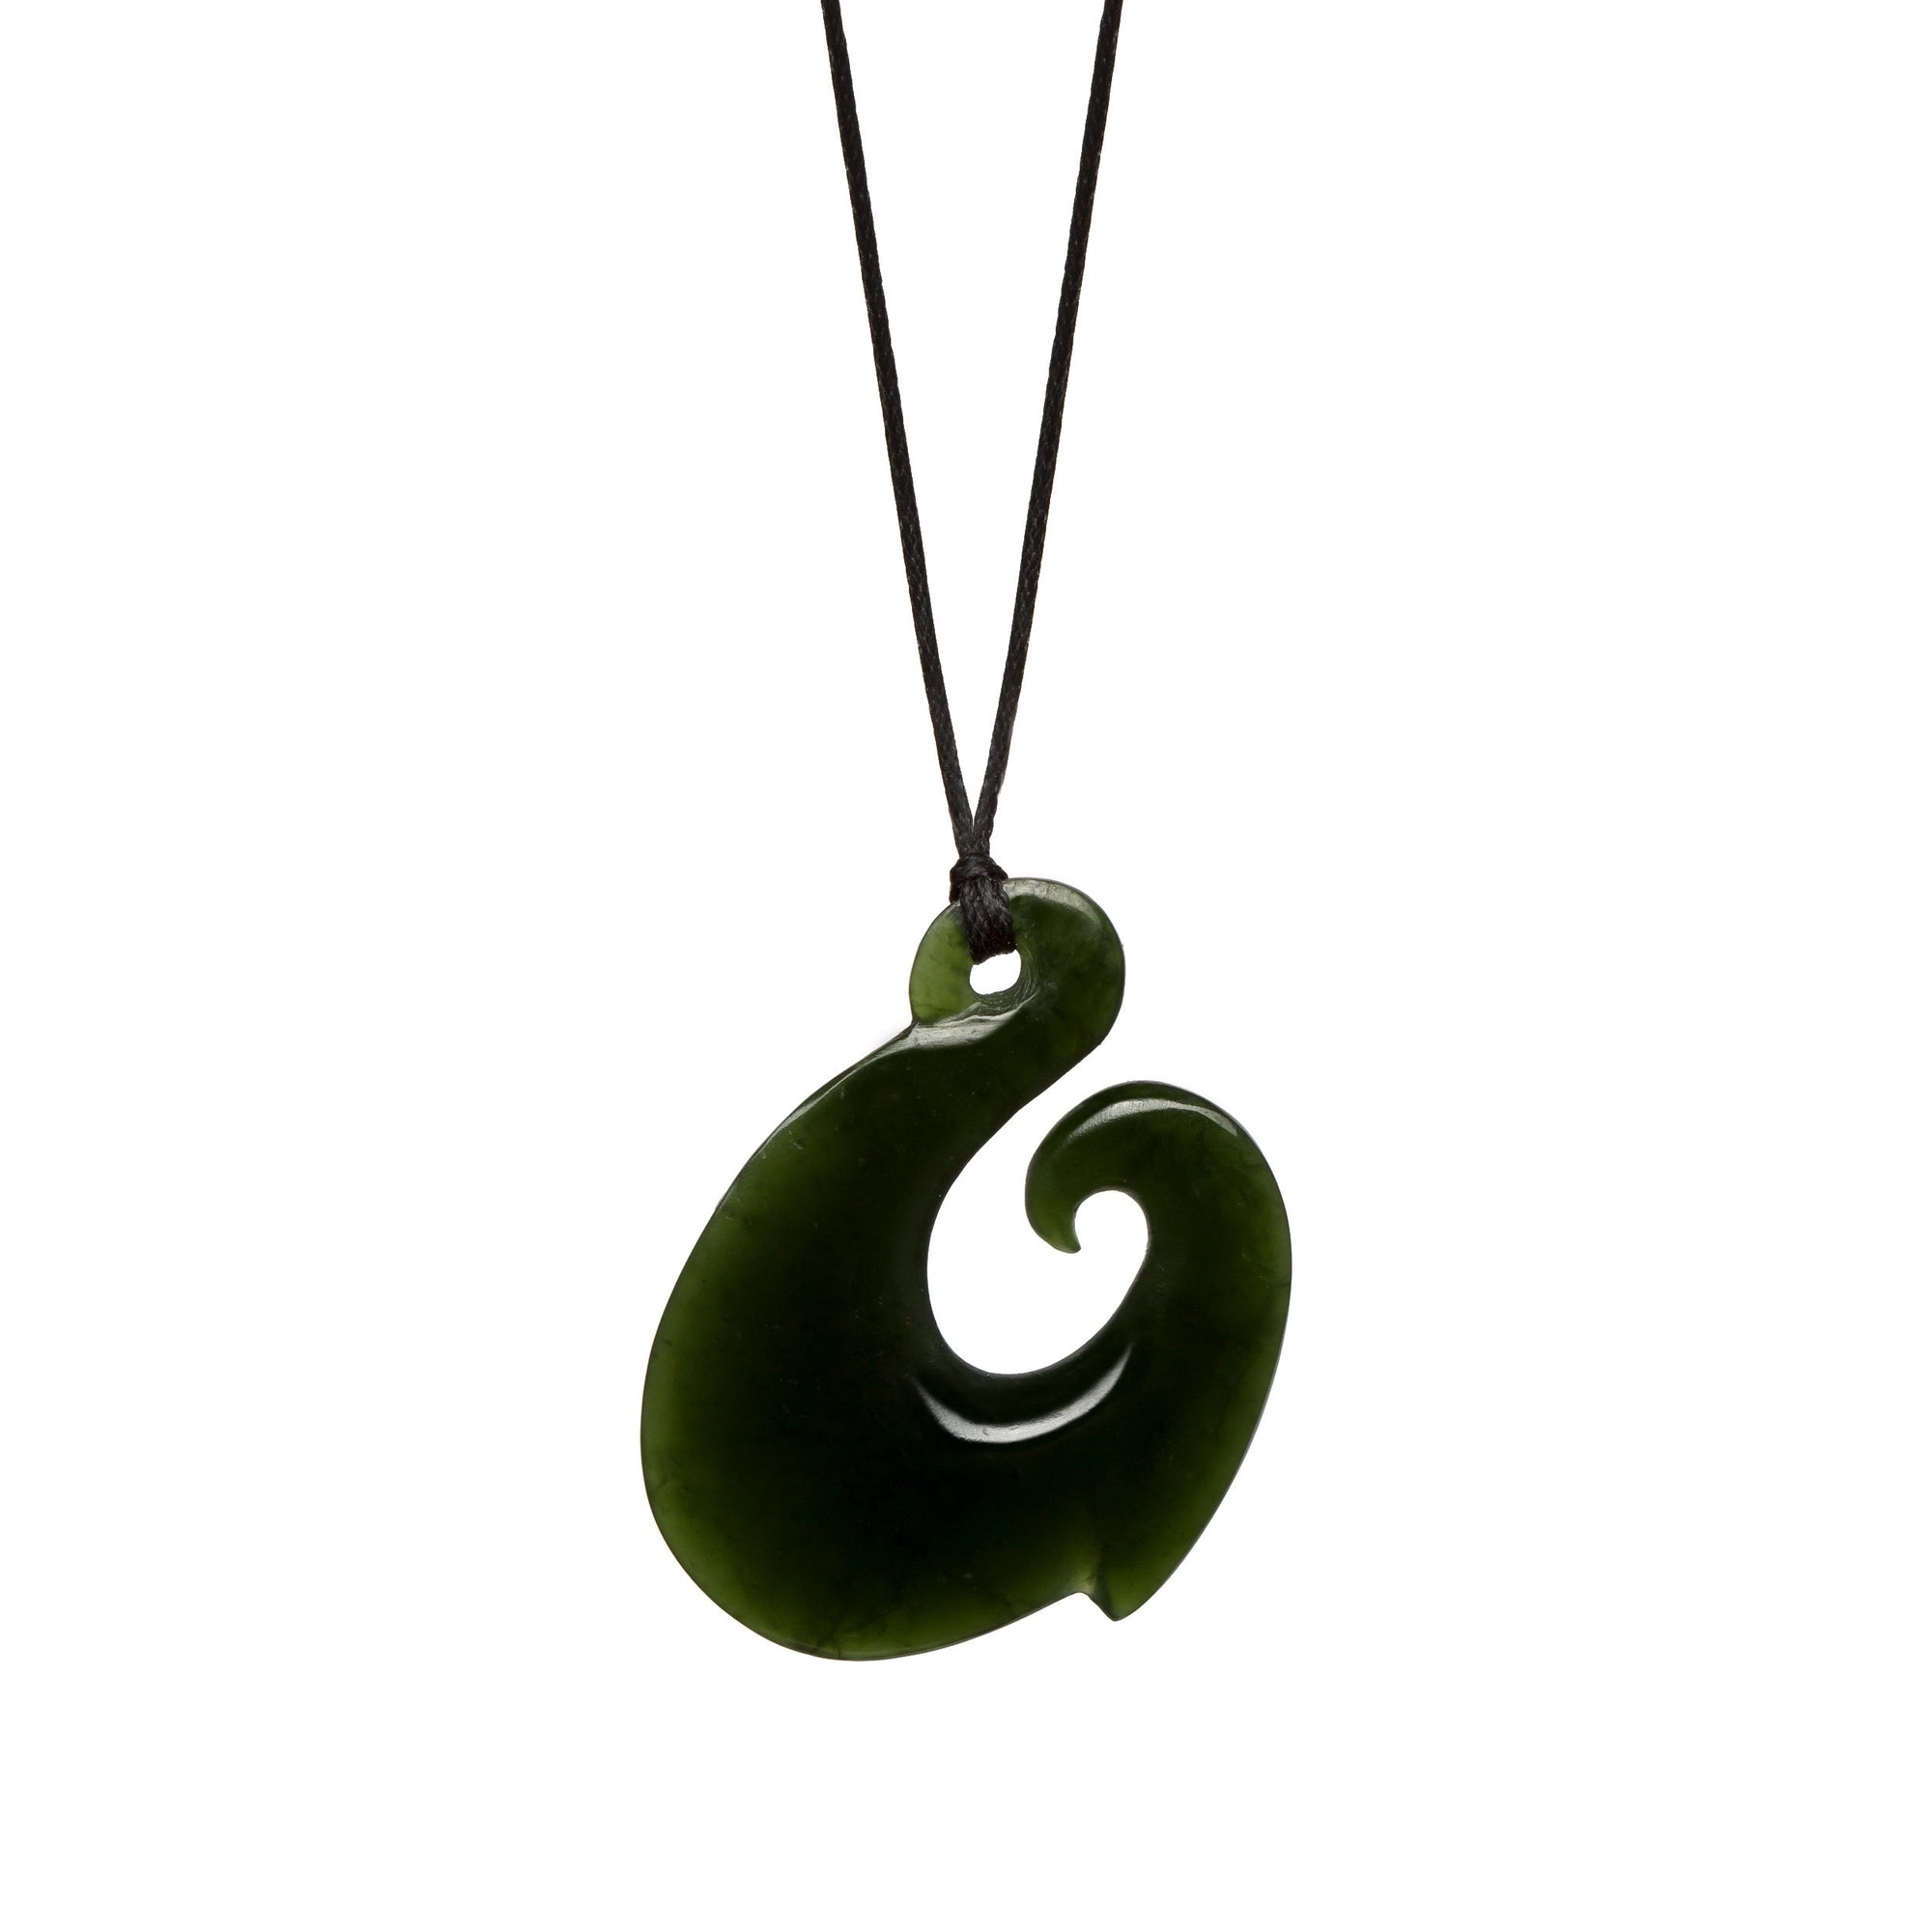 New Zealand Jade Curved Fish Hook Necklace